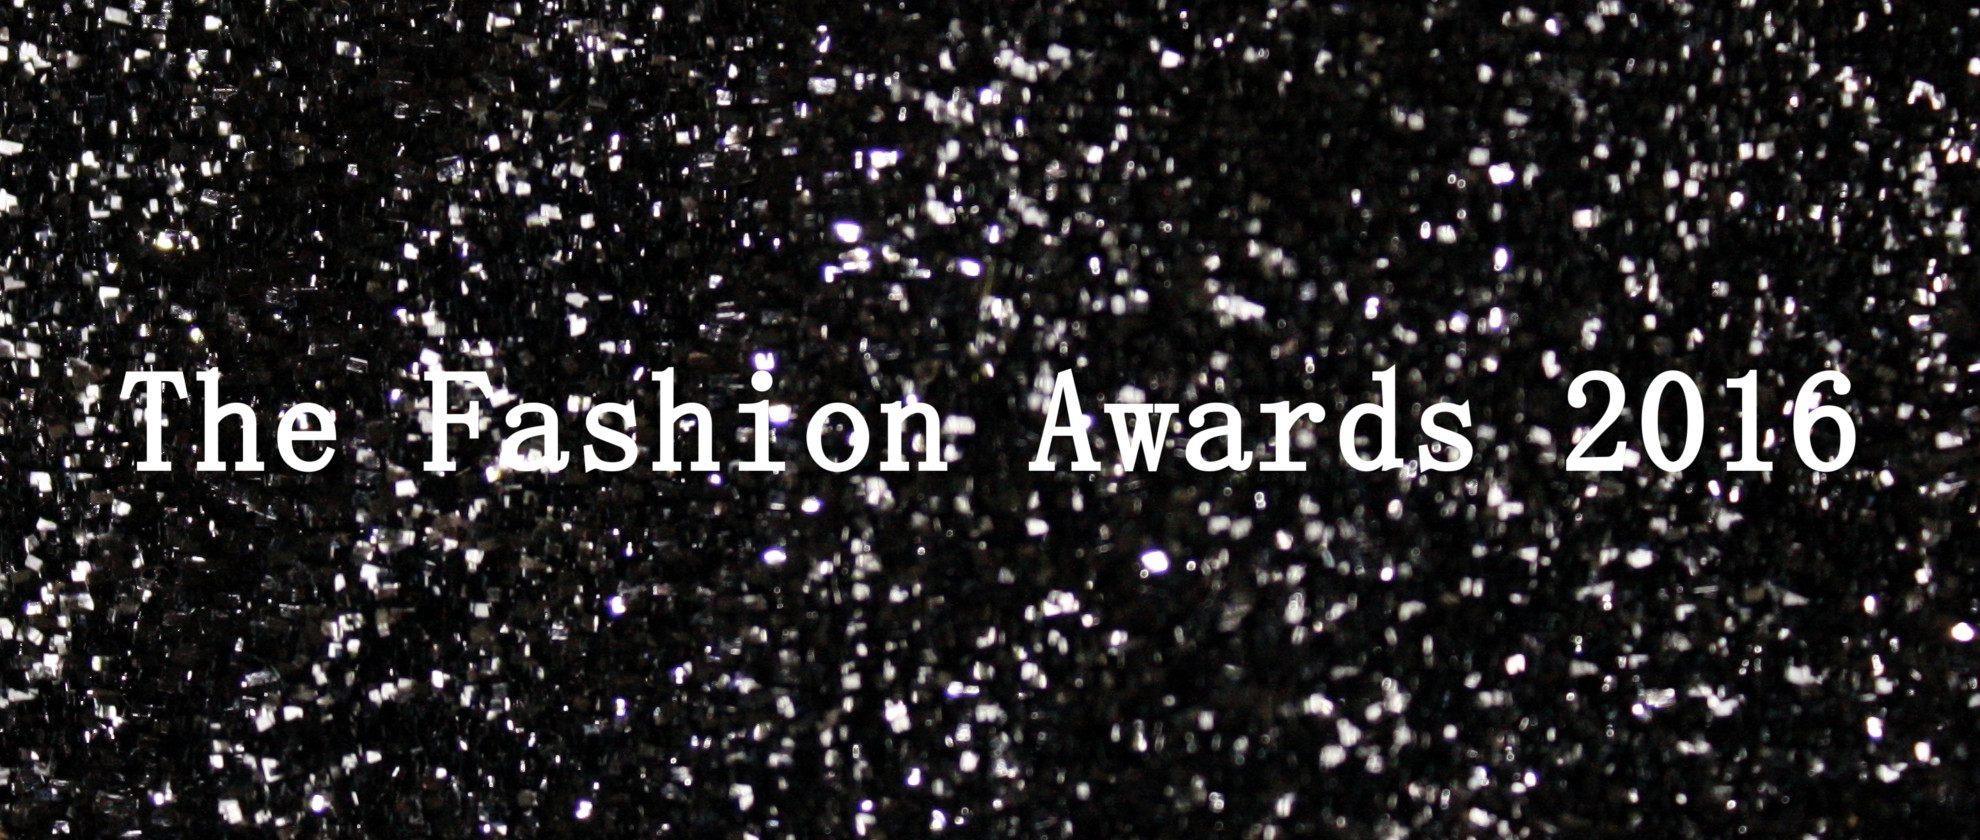 Everything You Need to Know About the Fashion Awards 2016